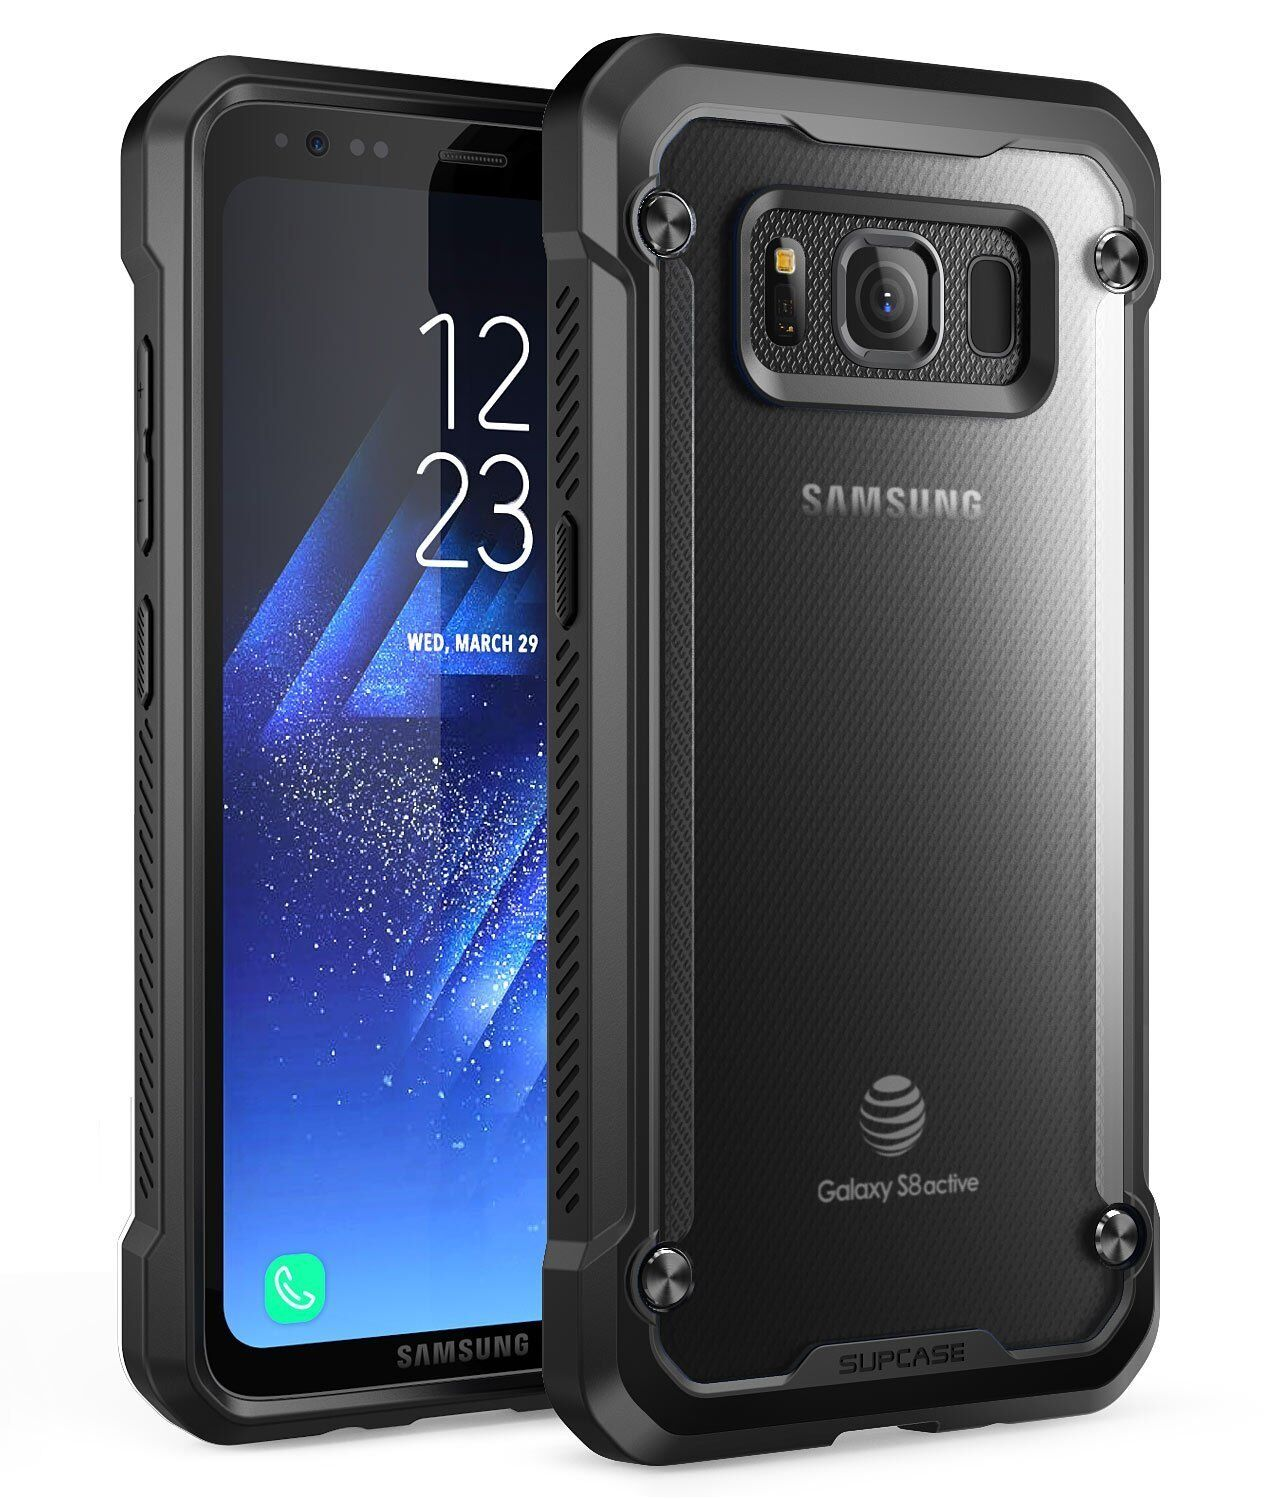 Galaxy S8 Active Case SUPCASE UB Series Hybrid Bumper Cover For Galaxy S8 ACTIVE